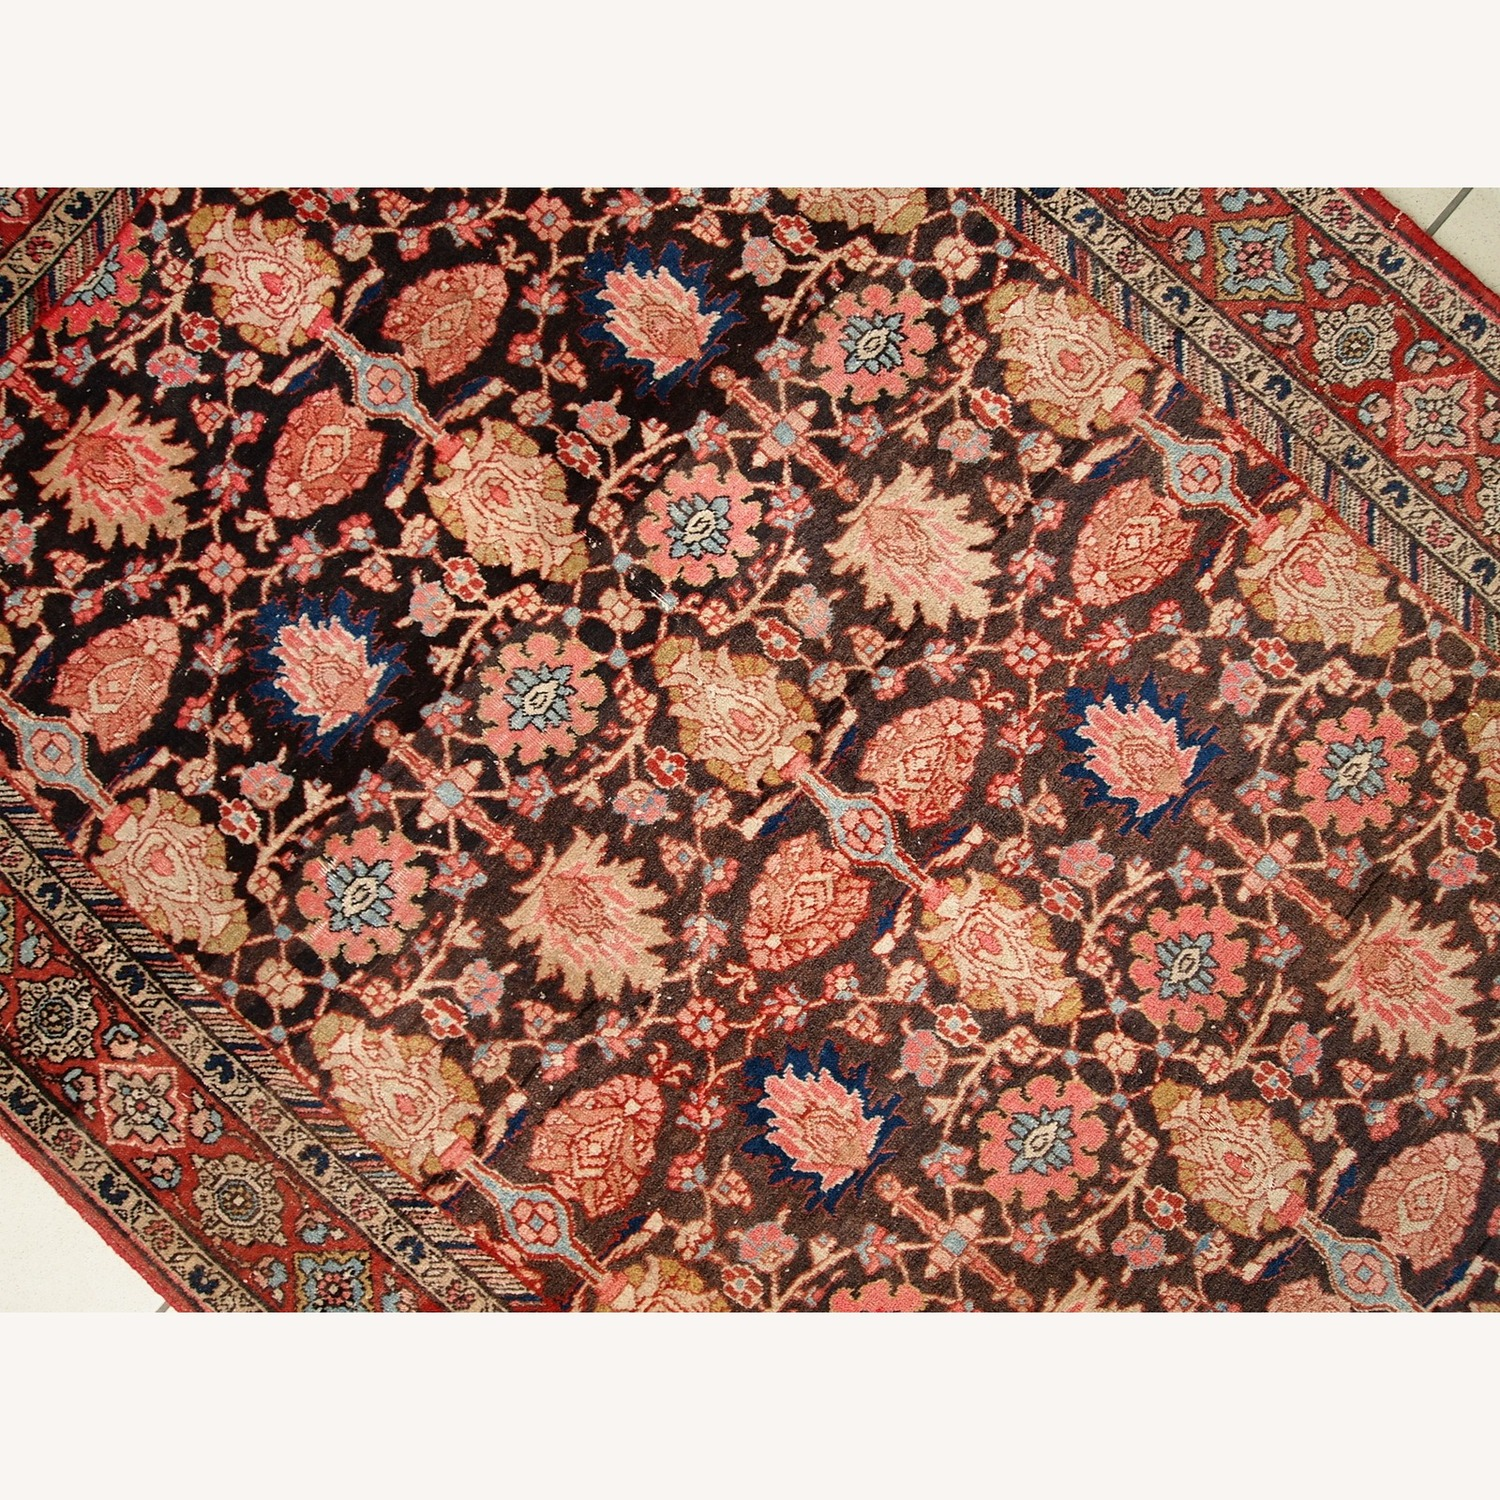 Handmade Antique Persian Bidjar Rug - image-9